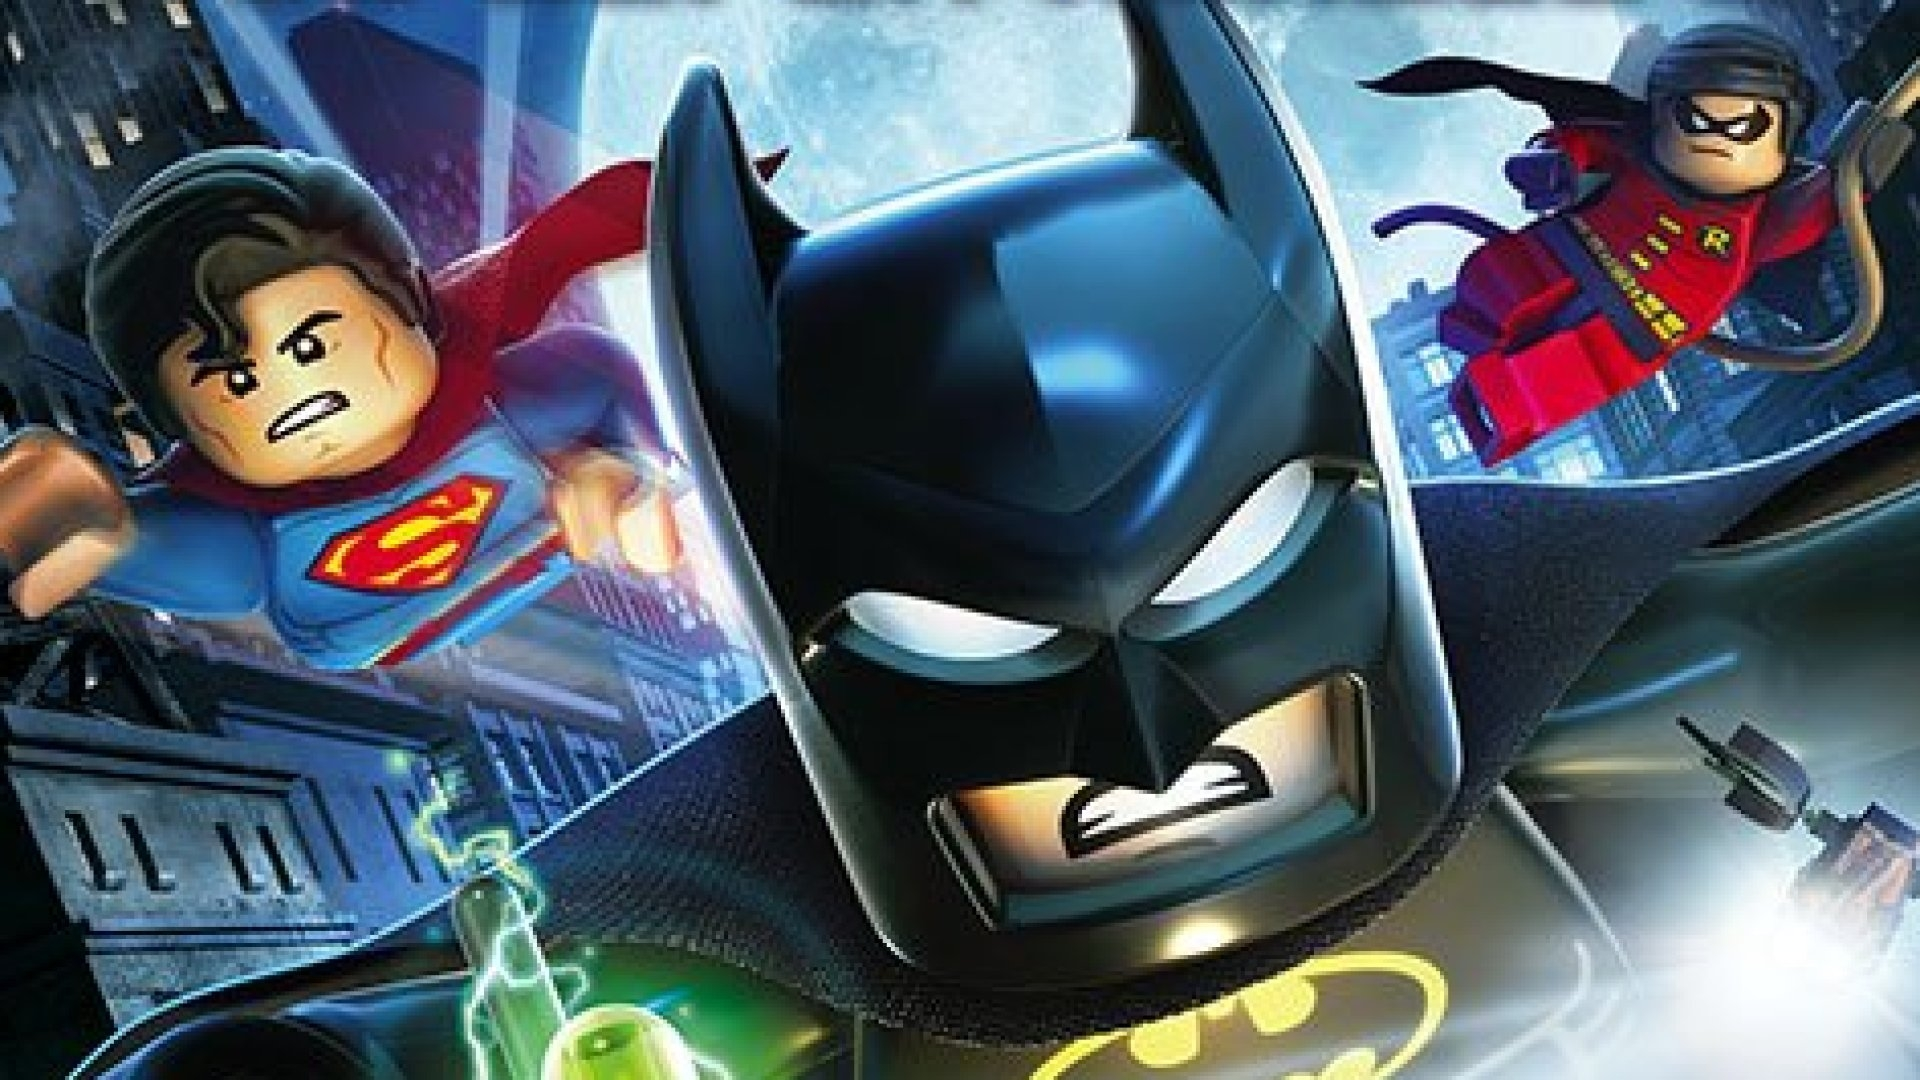 Animal Instincts 3 Full Movie lego batman: the movie - dc super heroes unite | sky